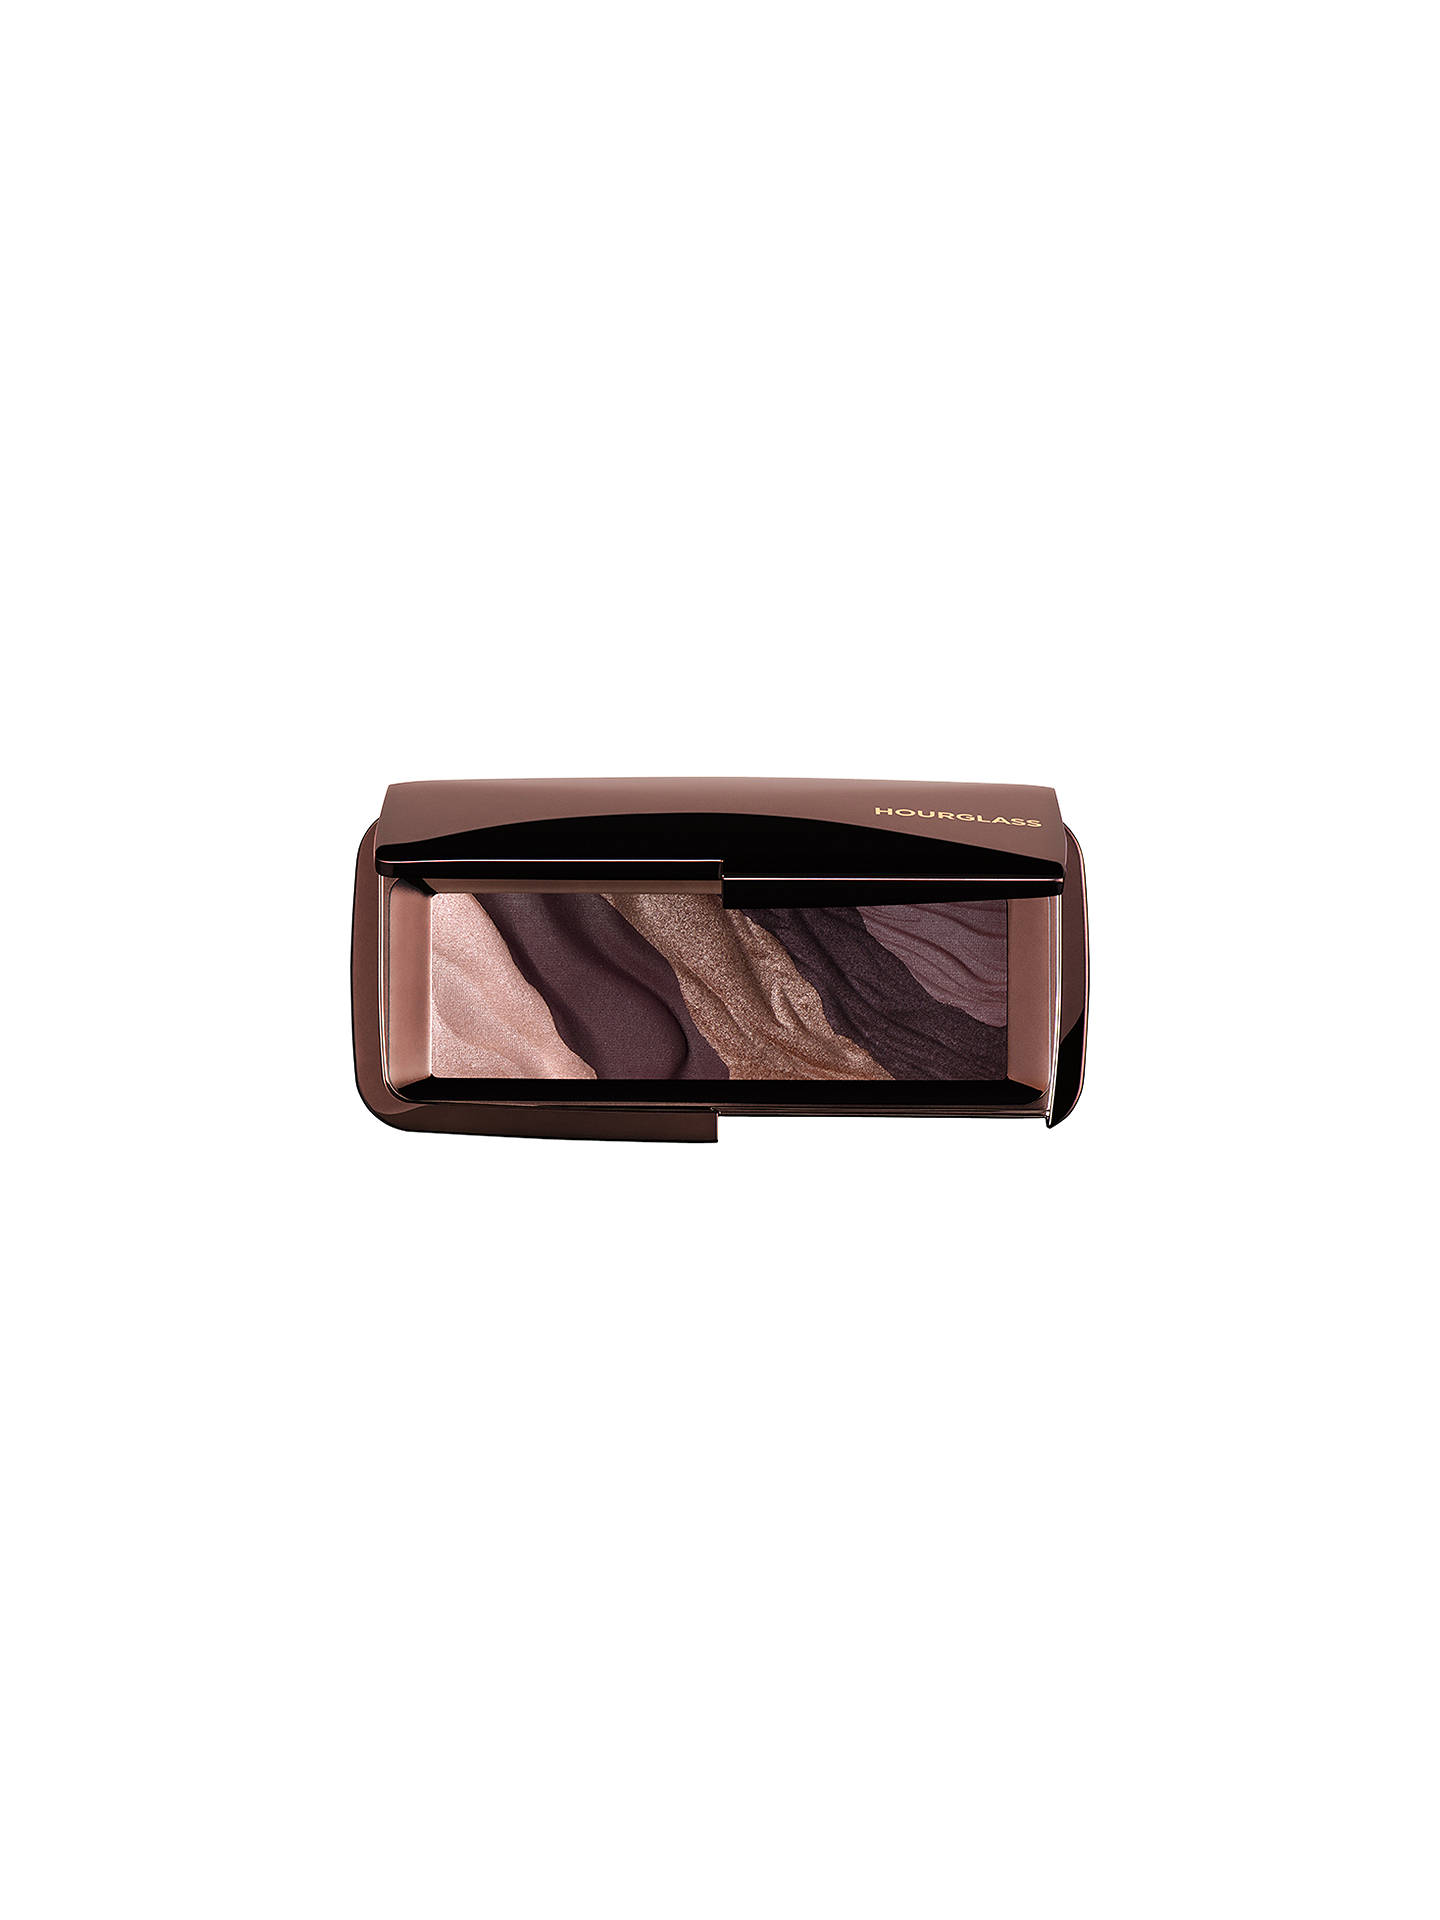 BuyHourglass Modernist Eyeshadow Palette, Exposure Online at johnlewis.com